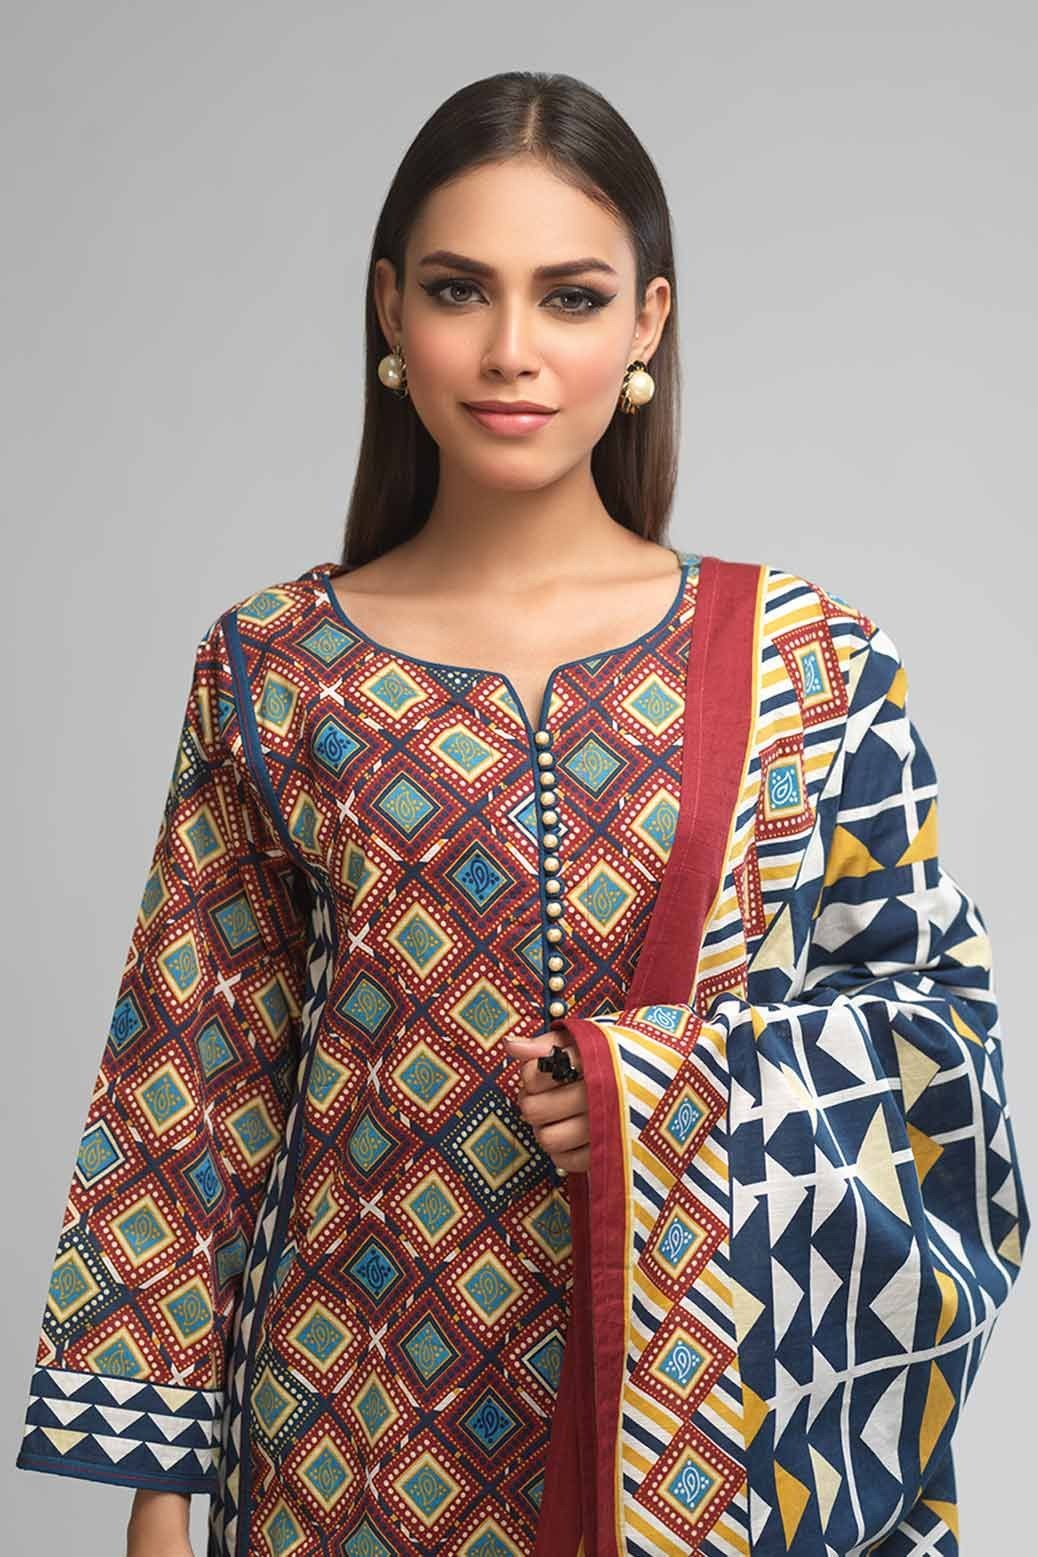 Bonanza Satrangi Ralli Fiesta B Winter Collection 2020